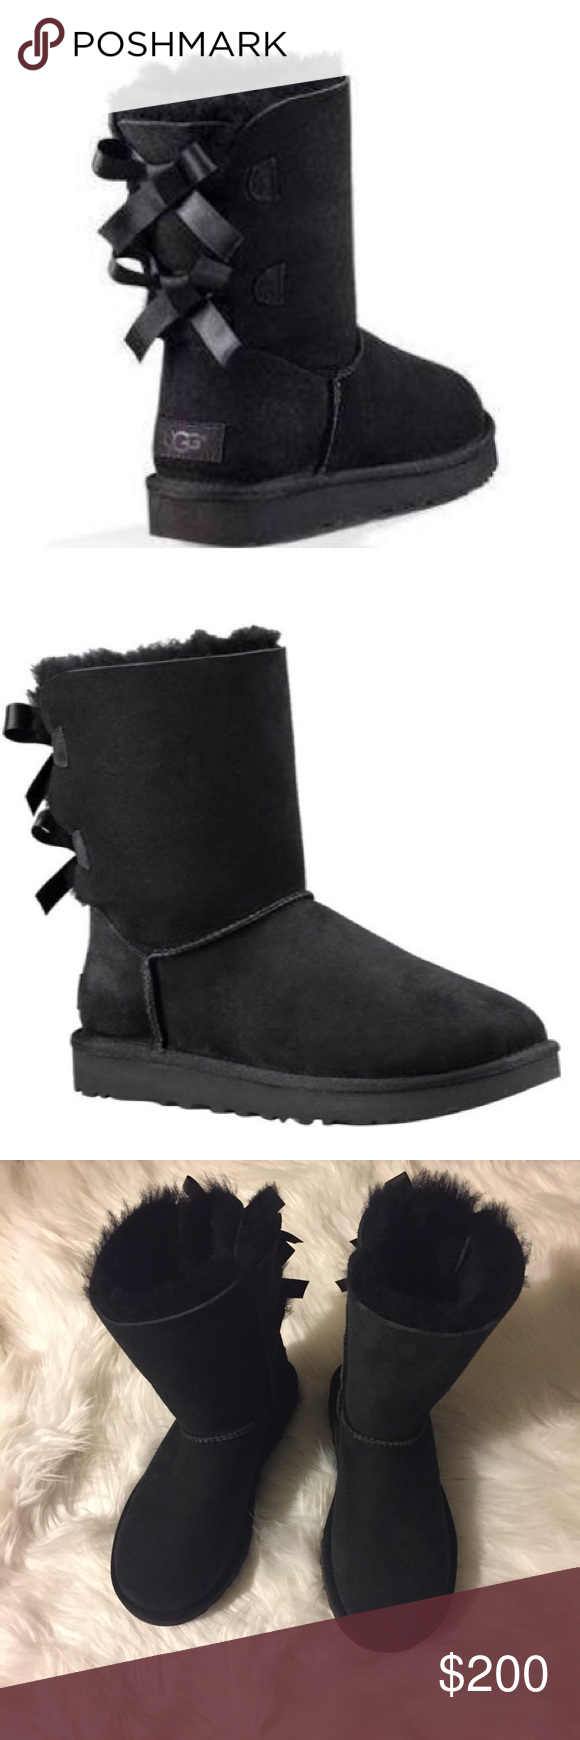 Black Bow Uggs Black Uggs With Bow Backs Never Been Worn